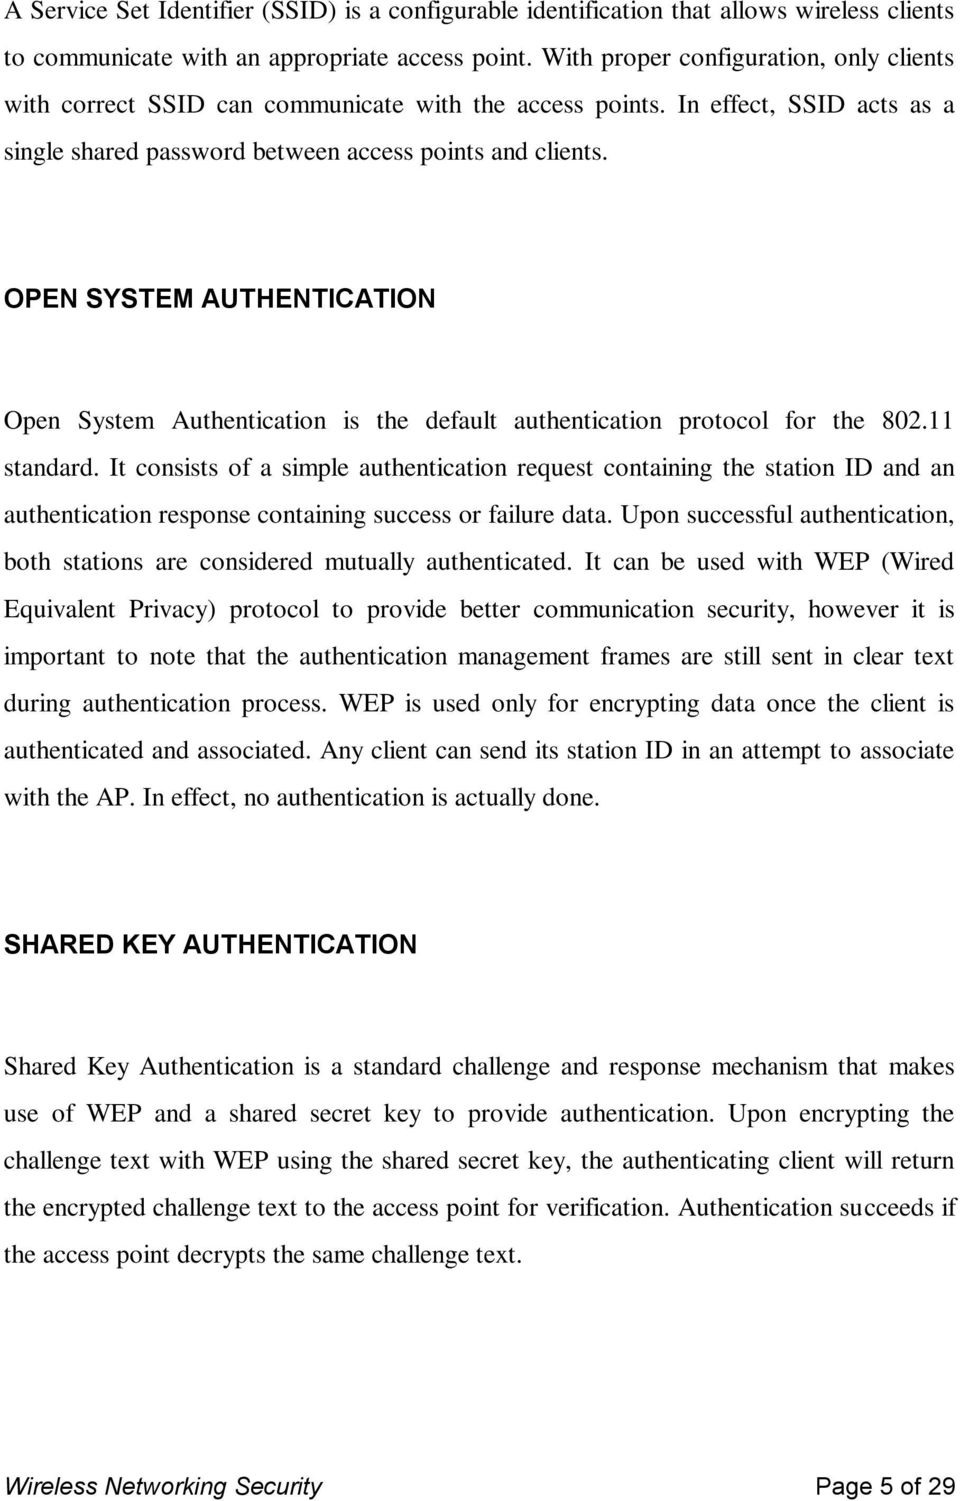 OPEN SYSTEM AUTHENTICATION Open System Authentication is the default authentication protocol for the 802.11 standard.